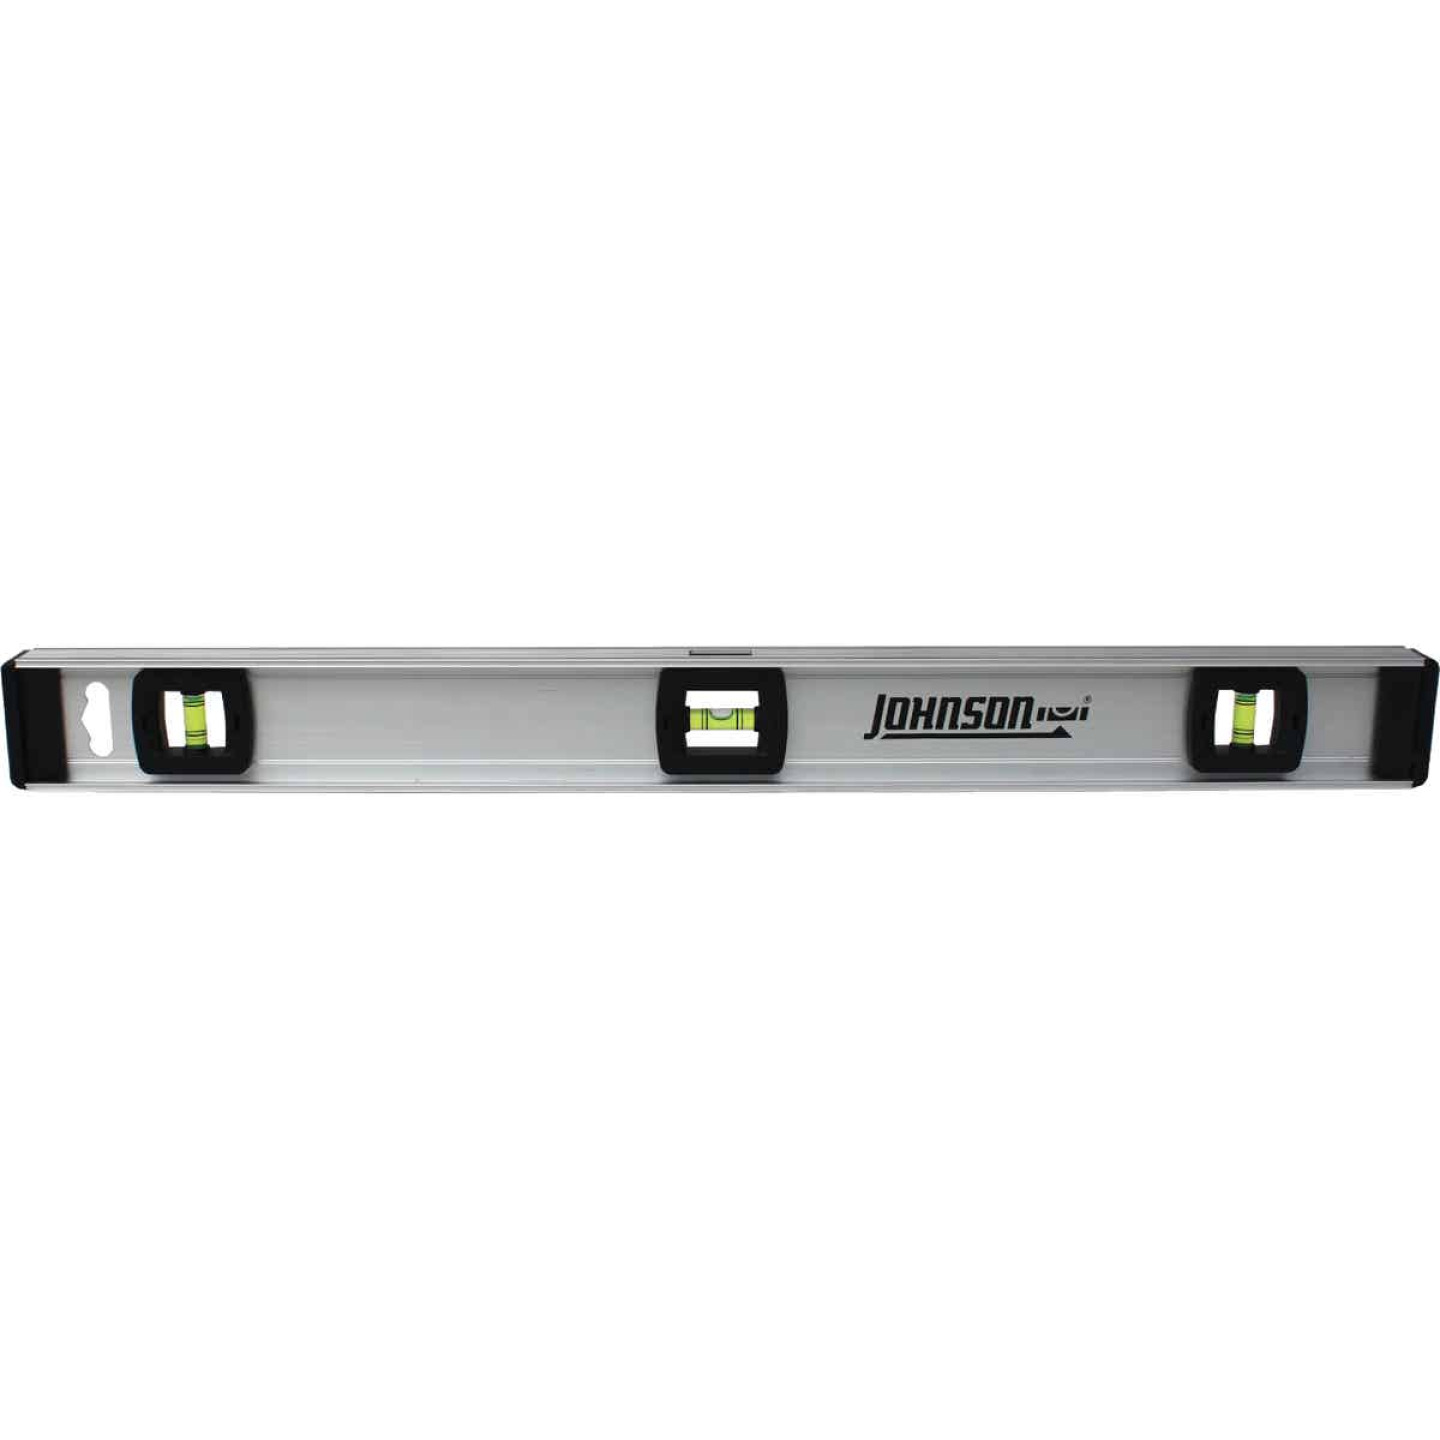 Johnson Level 24 In. Aluminum I-Beam Level Image 1